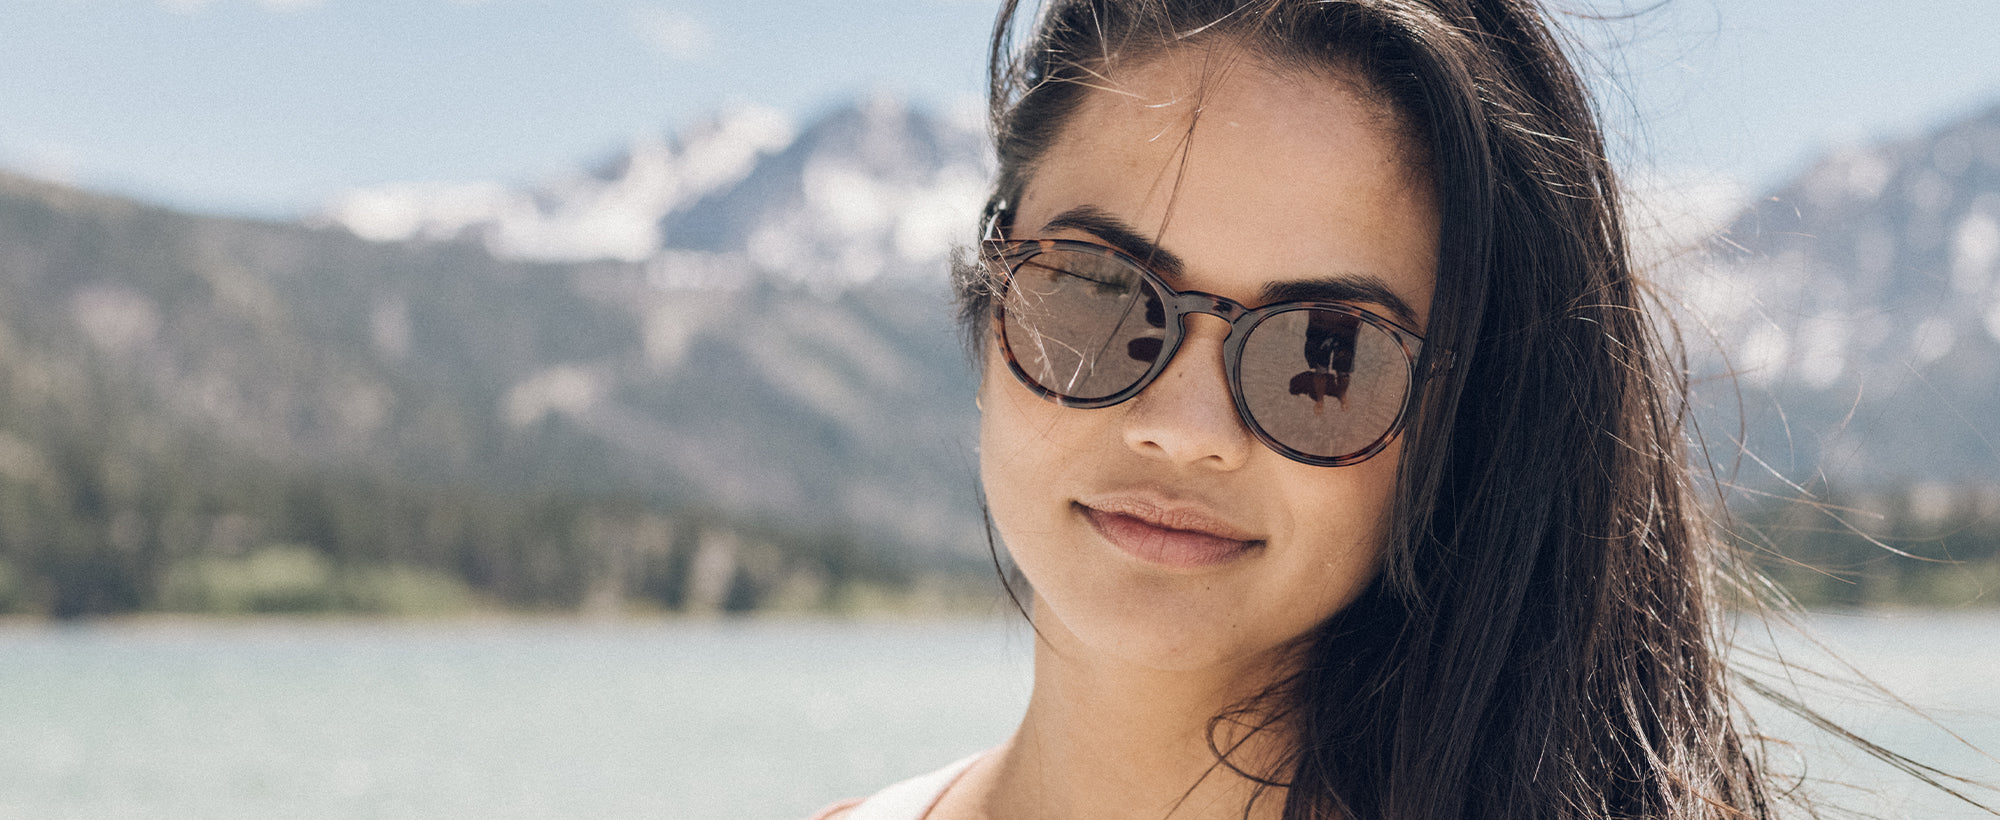 woman wearing tortoise shell sunglasses by the ocean